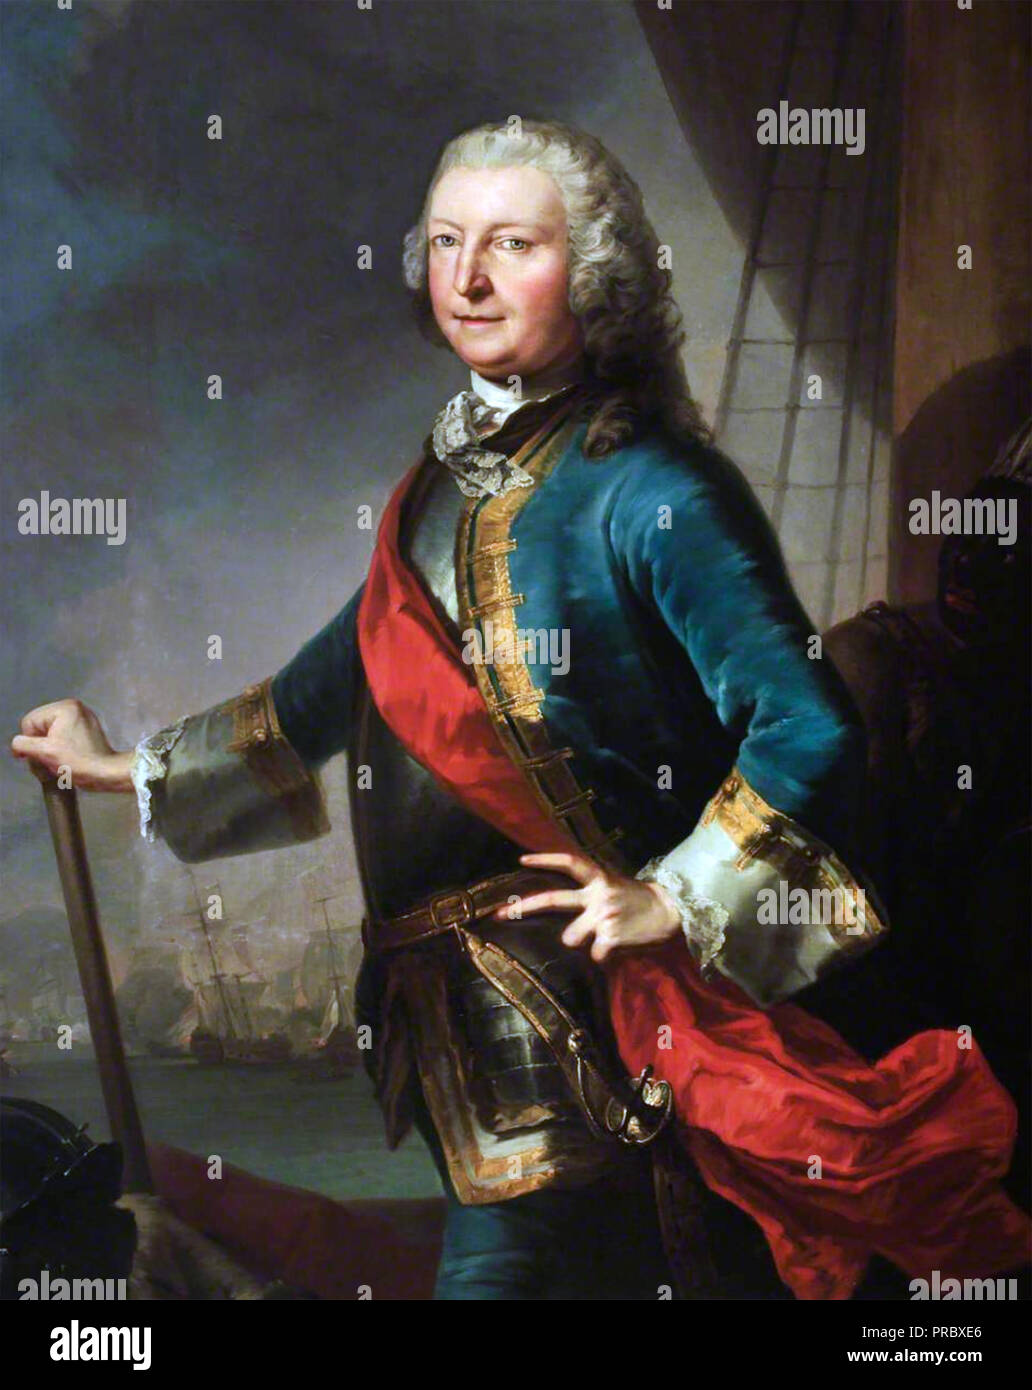 GEORGE ANSON, Ist Baron Anson (1697-1762) Royal Navy officer who circumnavigated the world between 1740 and 1744 while Britain was at war with Spain - Stock Image